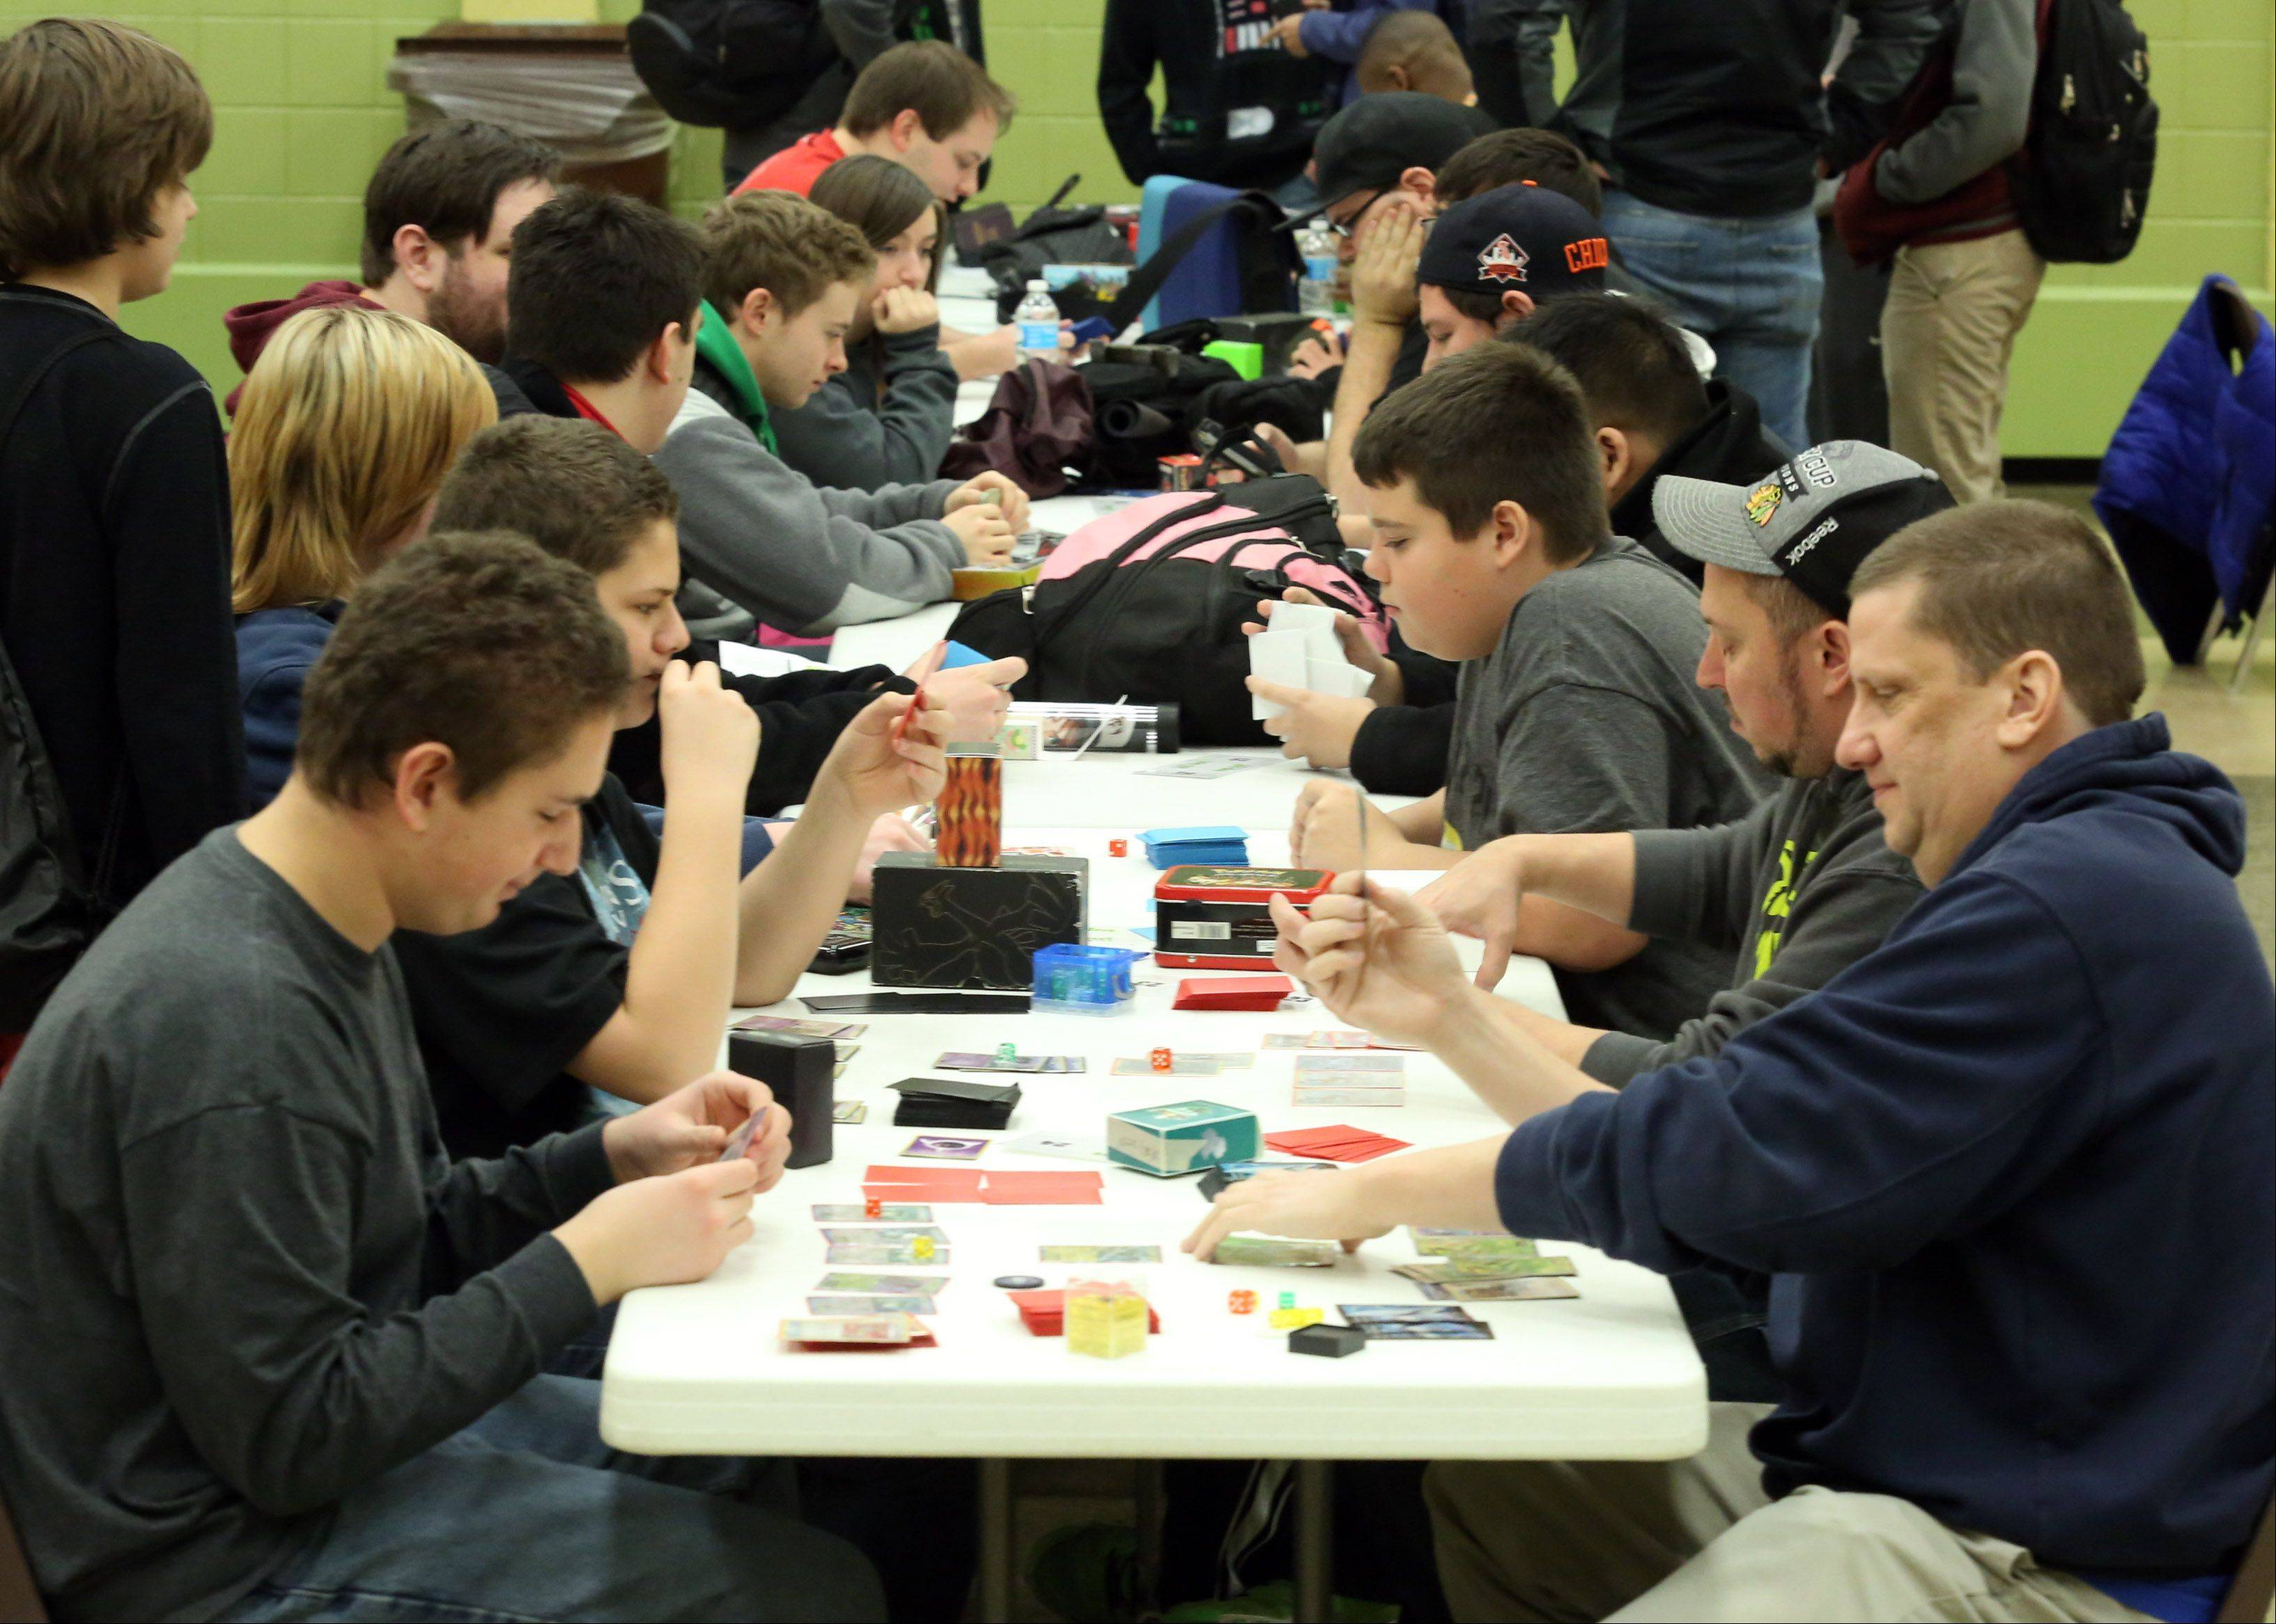 About 60 people competed in the Pok�mon City Championships, according to organizer Jimmy Ballard of Plainfield, second from front at right.